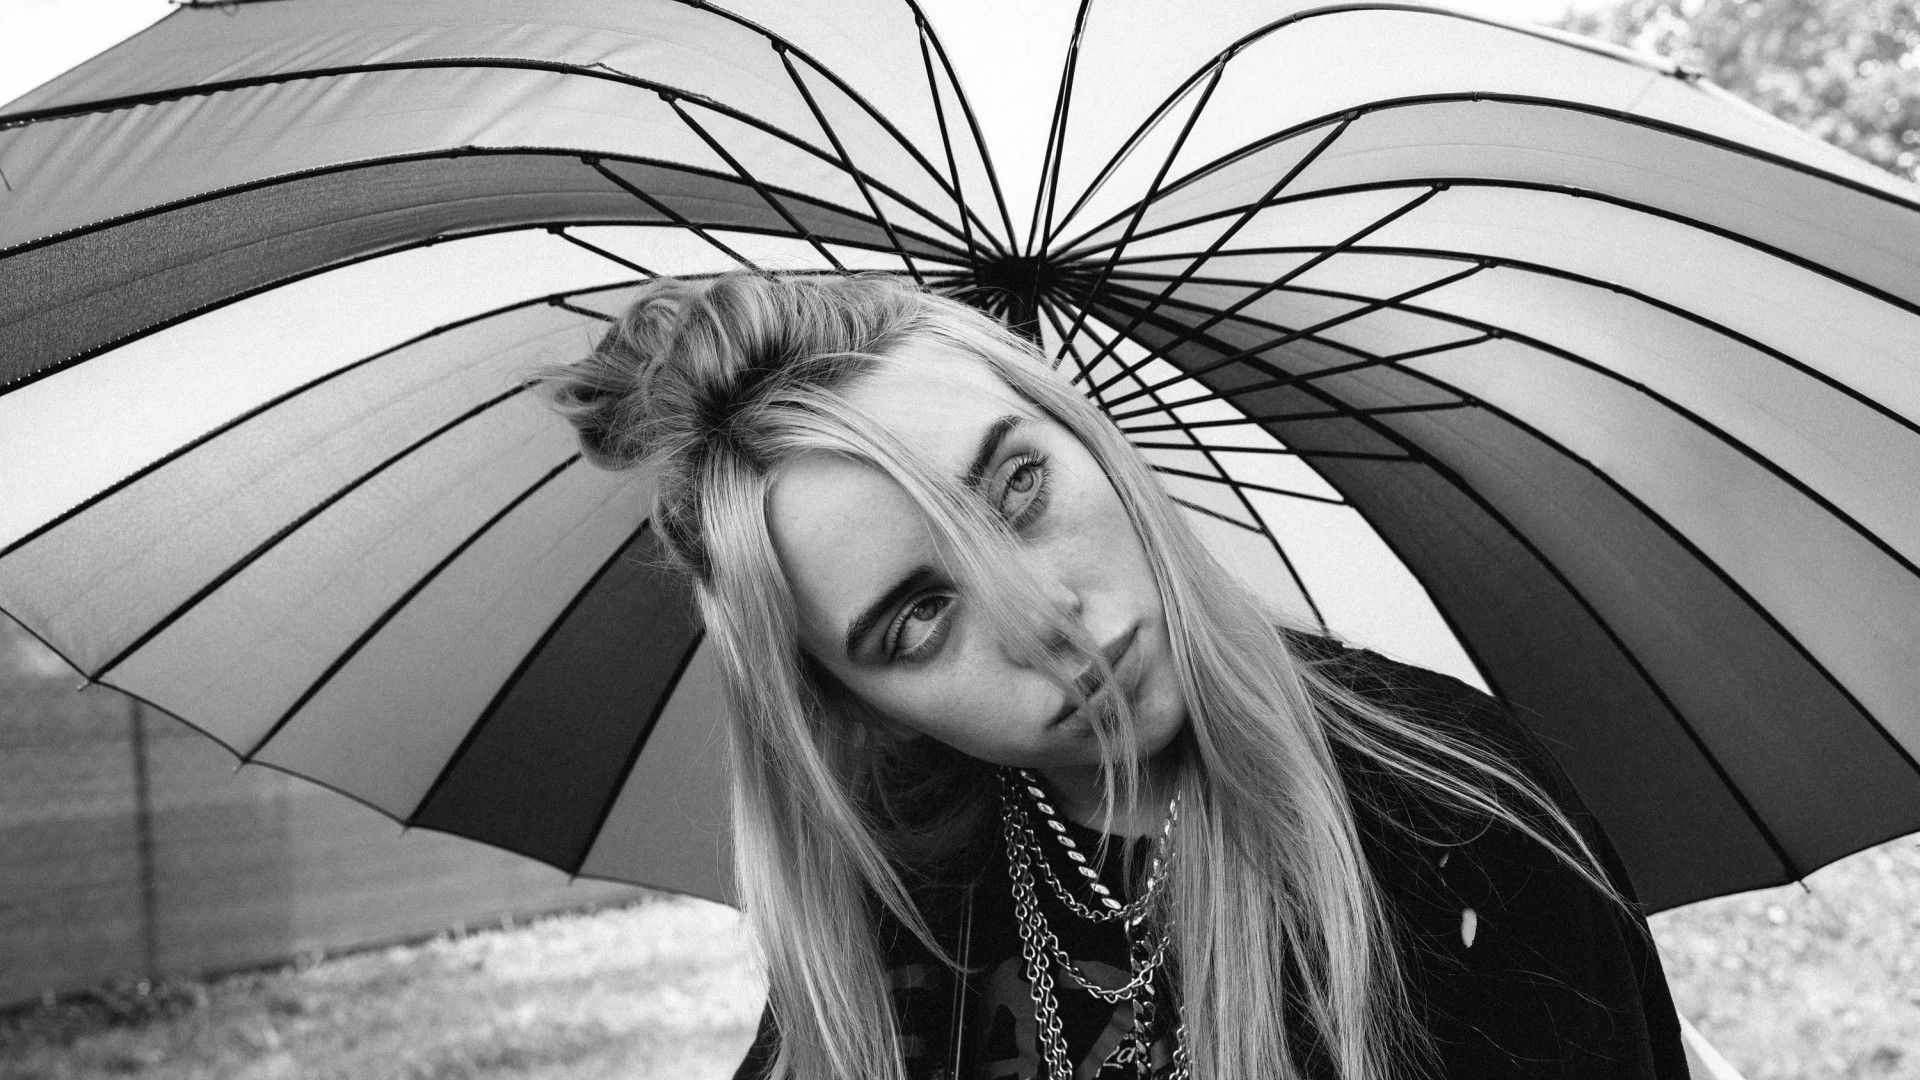 Billie Eilish Pc Wallpapers Top Free Billie Eilish Pc Backgrounds Wallpaperaccess